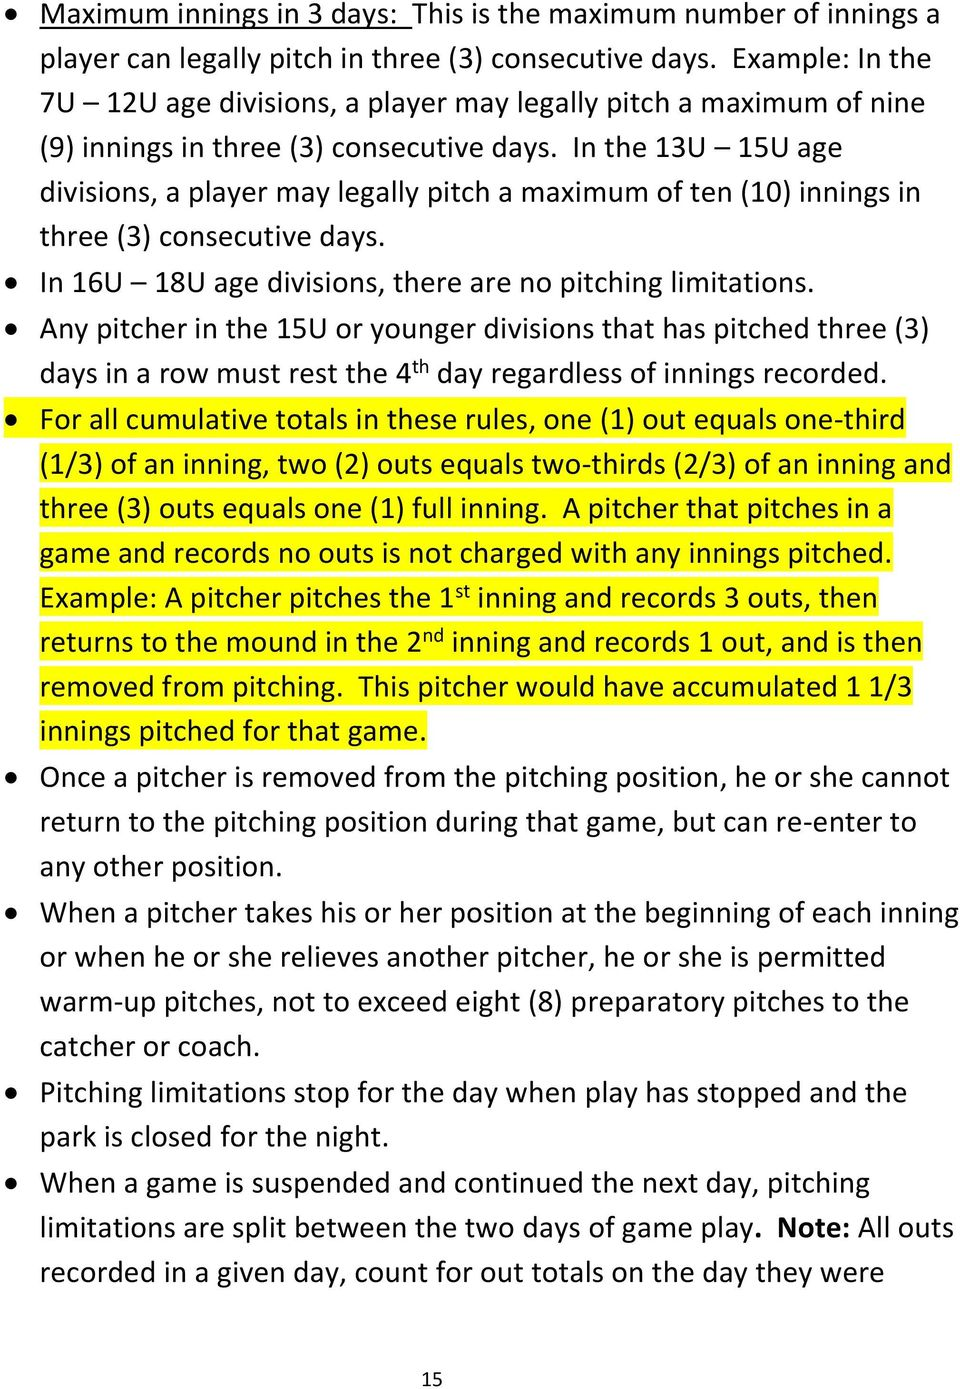 In the 13U 15U age divisions, a player may legally pitch a maximum of ten (10) innings in three (3) consecutive days. In 16U 18U age divisions, there are no pitching limitations.